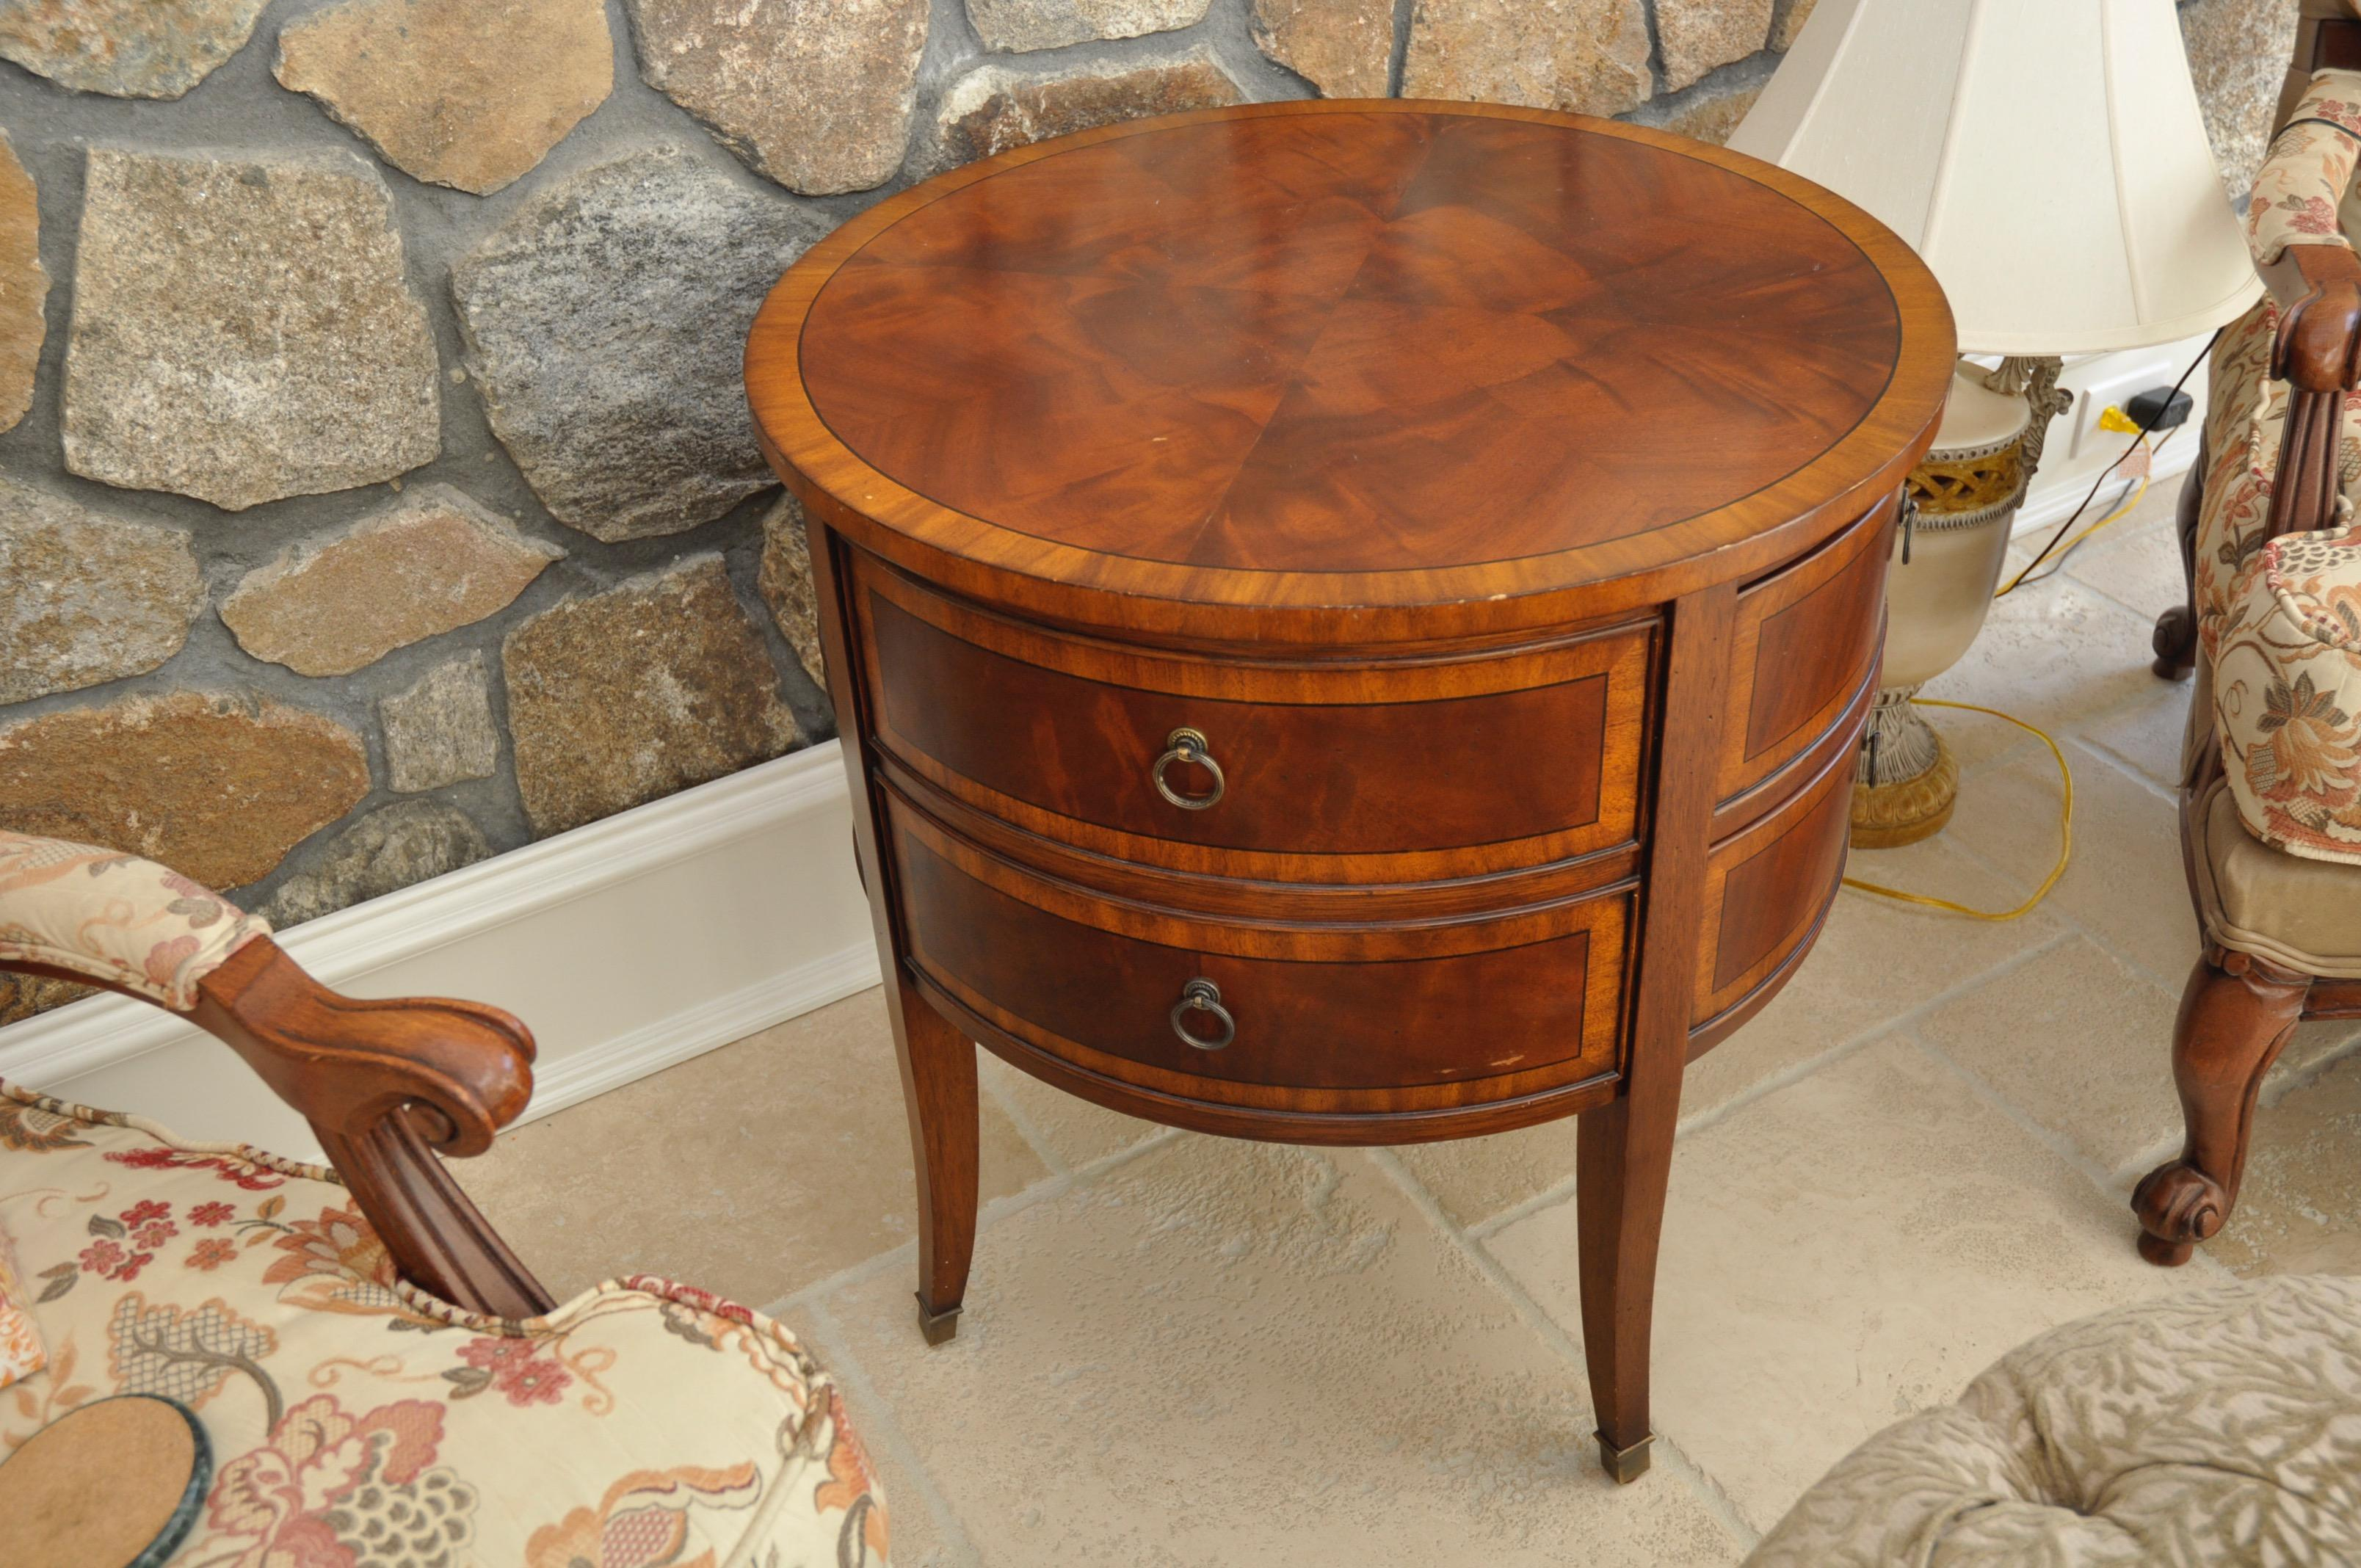 Wonderful Ethan Allen Newport Collection Osborne Round End Table   Image 2 Of 8